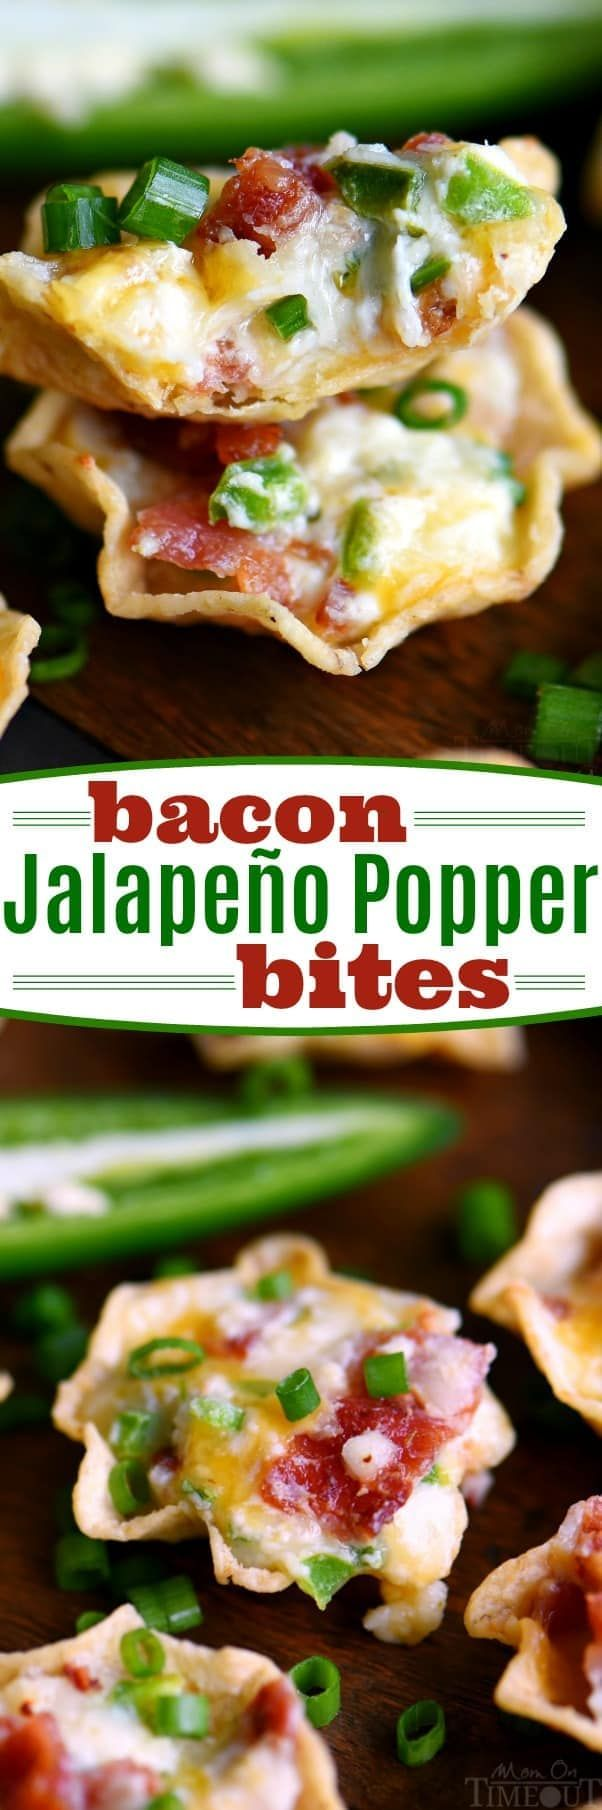 These Bacon Jalapeño Popper Bites are the ULTIMATE appetizer! Cheesy, creamy, spicy, bite-sized an